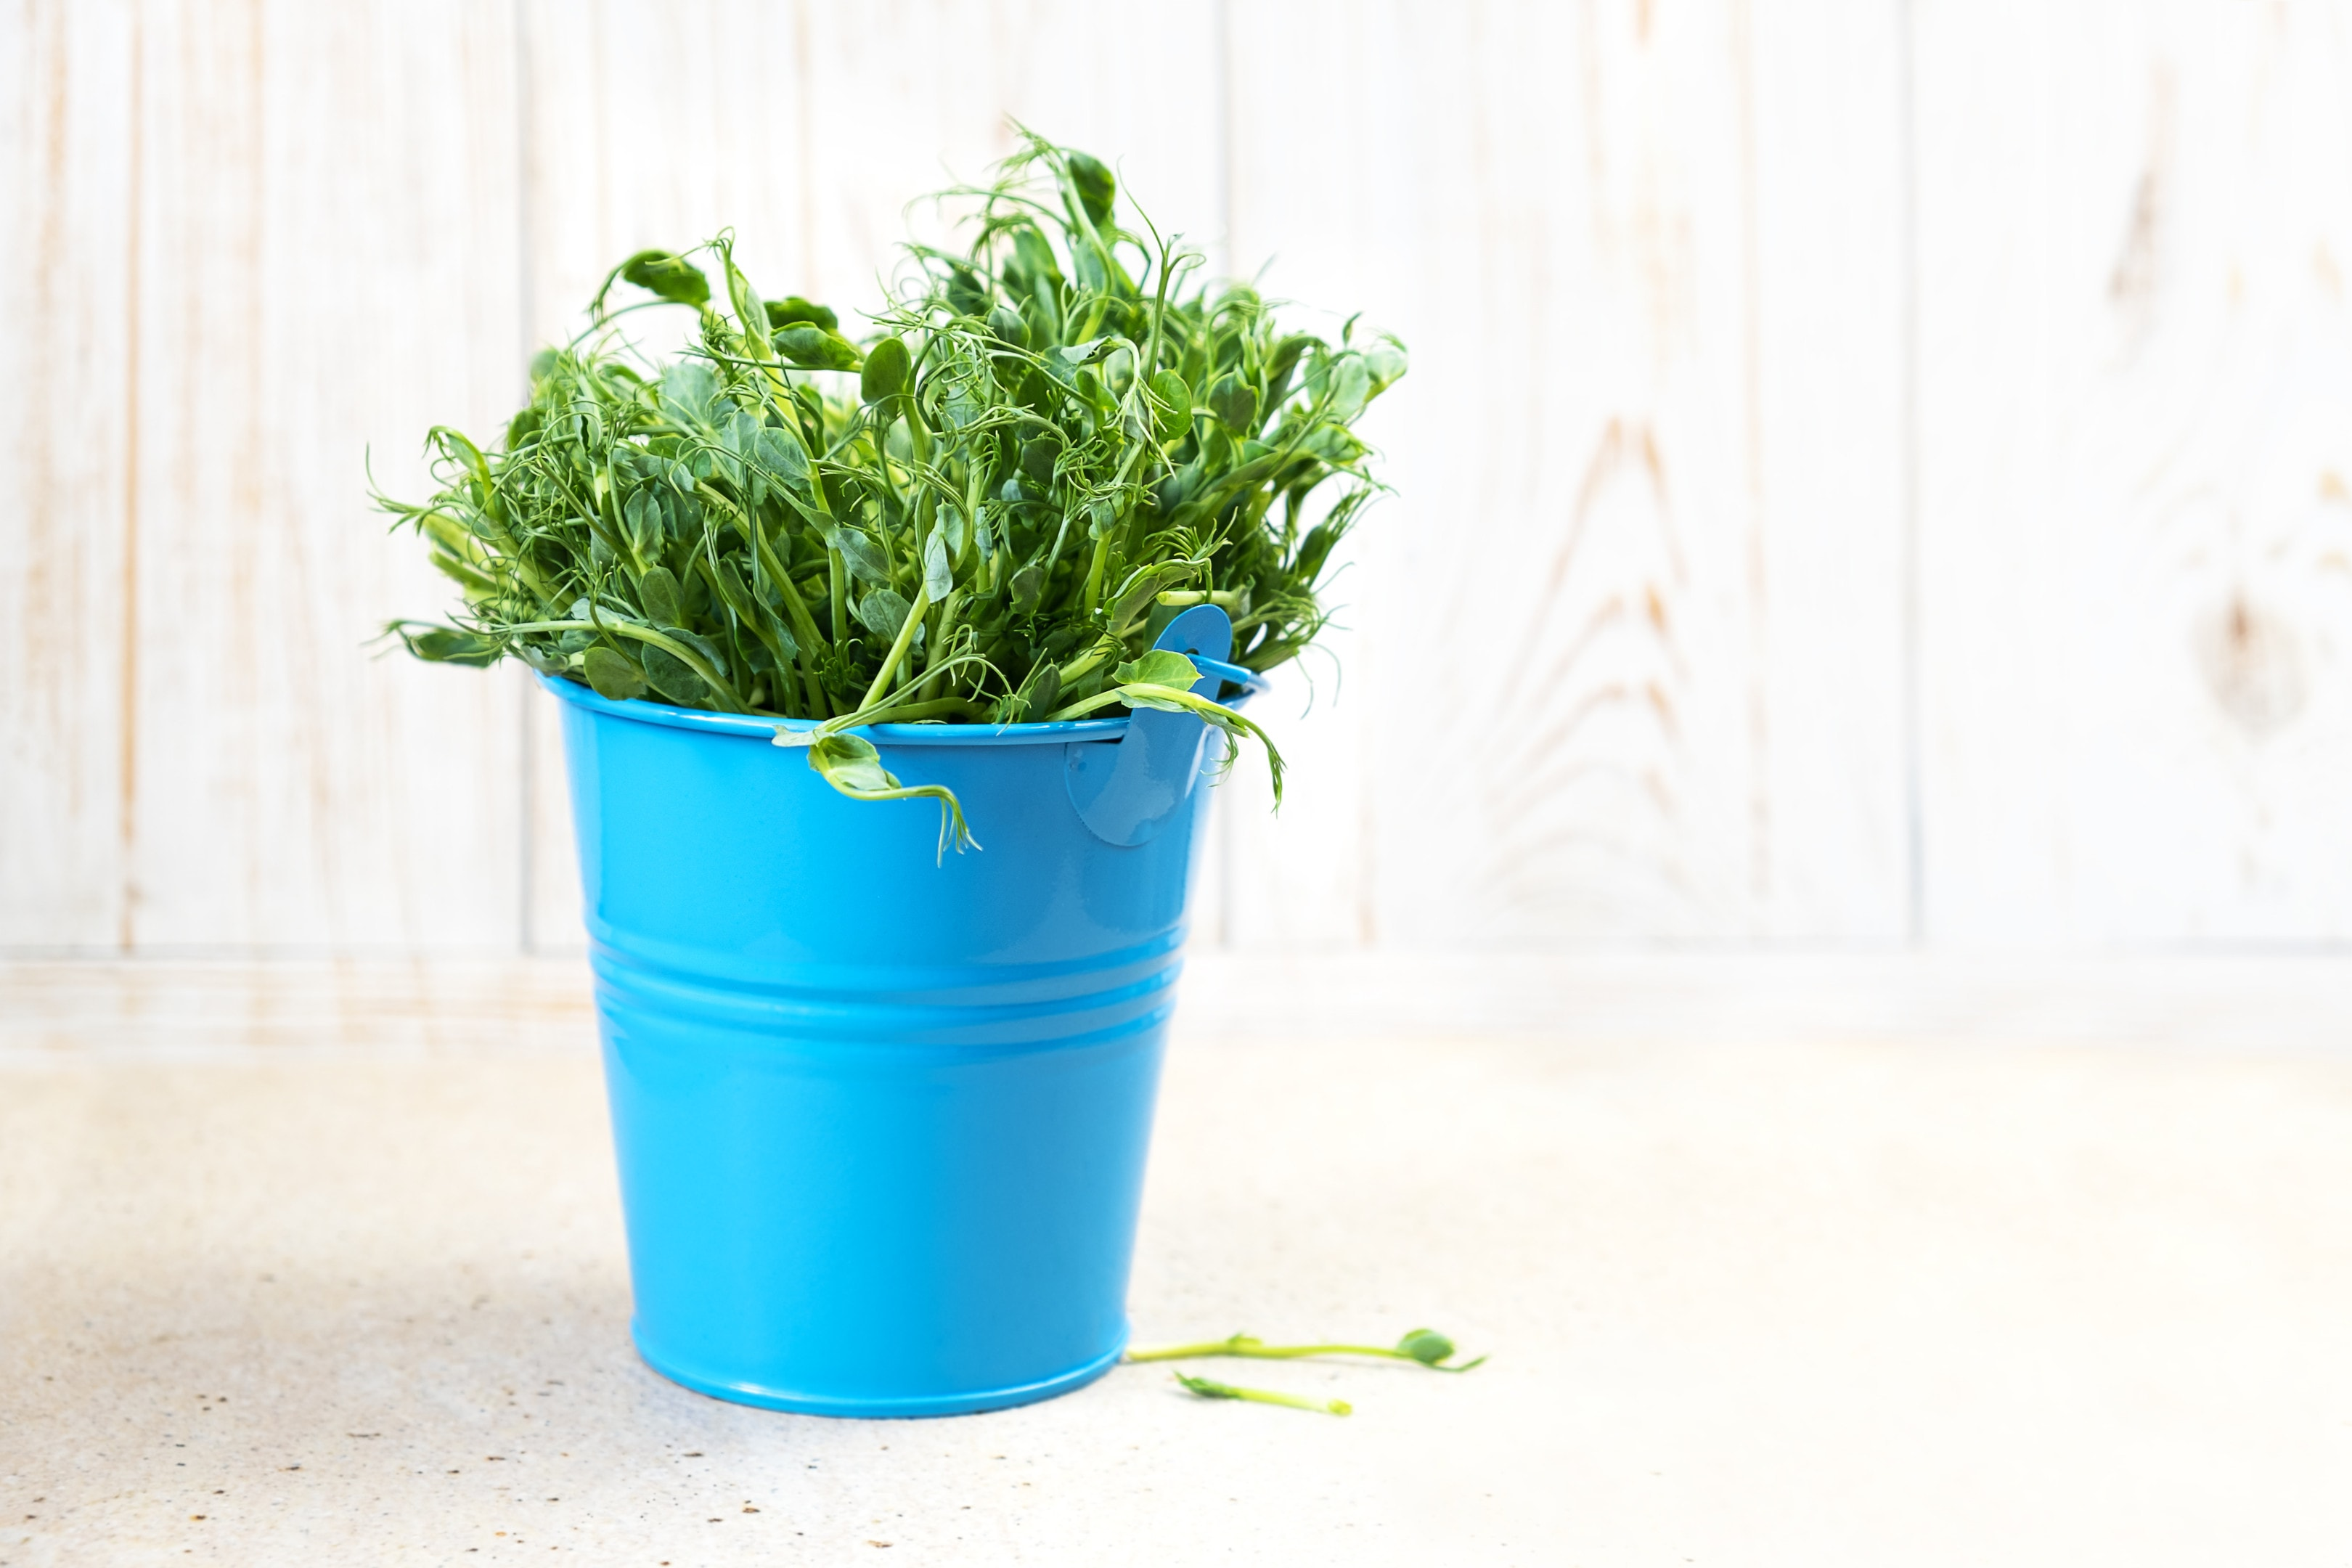 Micro greens snow pea sprouts in blue bucket